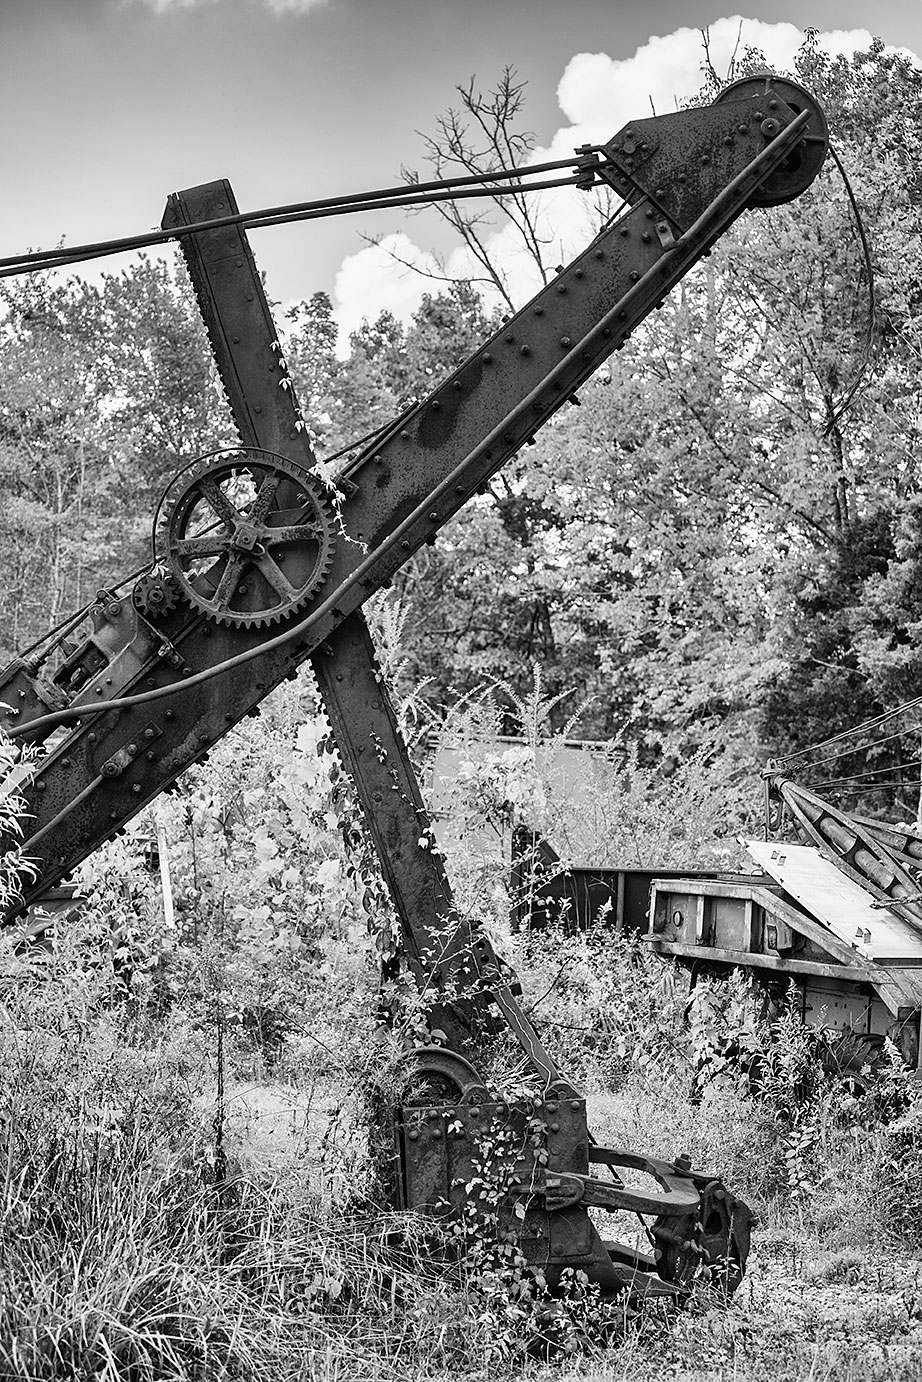 Vines and weeds slowly overtake the bucket of a rusty, abandoned steam shovel.